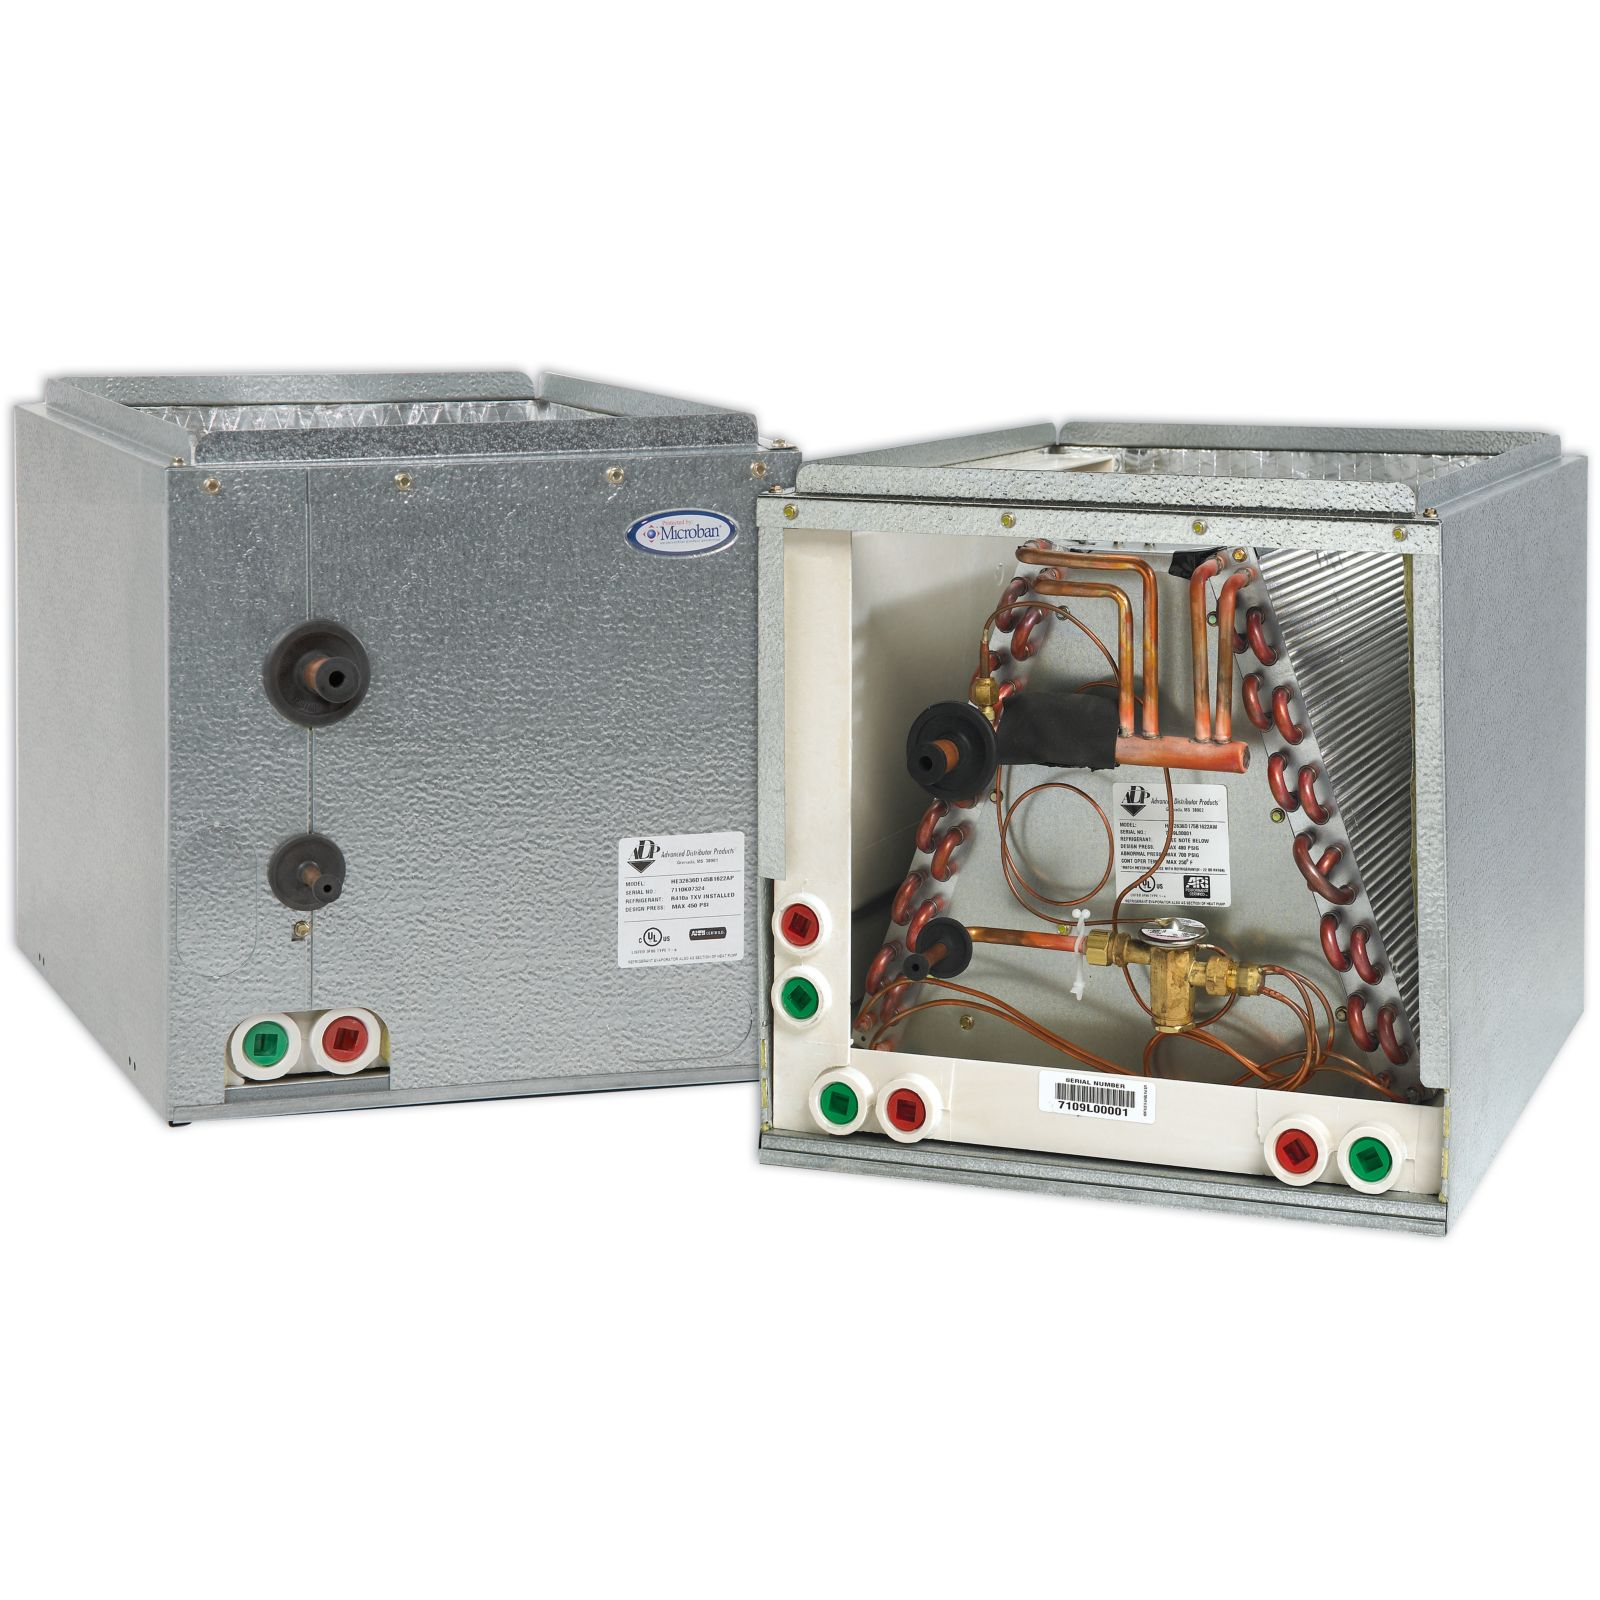 "ADP RE47636C210B2922AP - HE Series Cased Evaporator Coil 3 Ton Copper Left Hand Multi-Position, R410A, 20.5"" X 21"" X 29.5"""